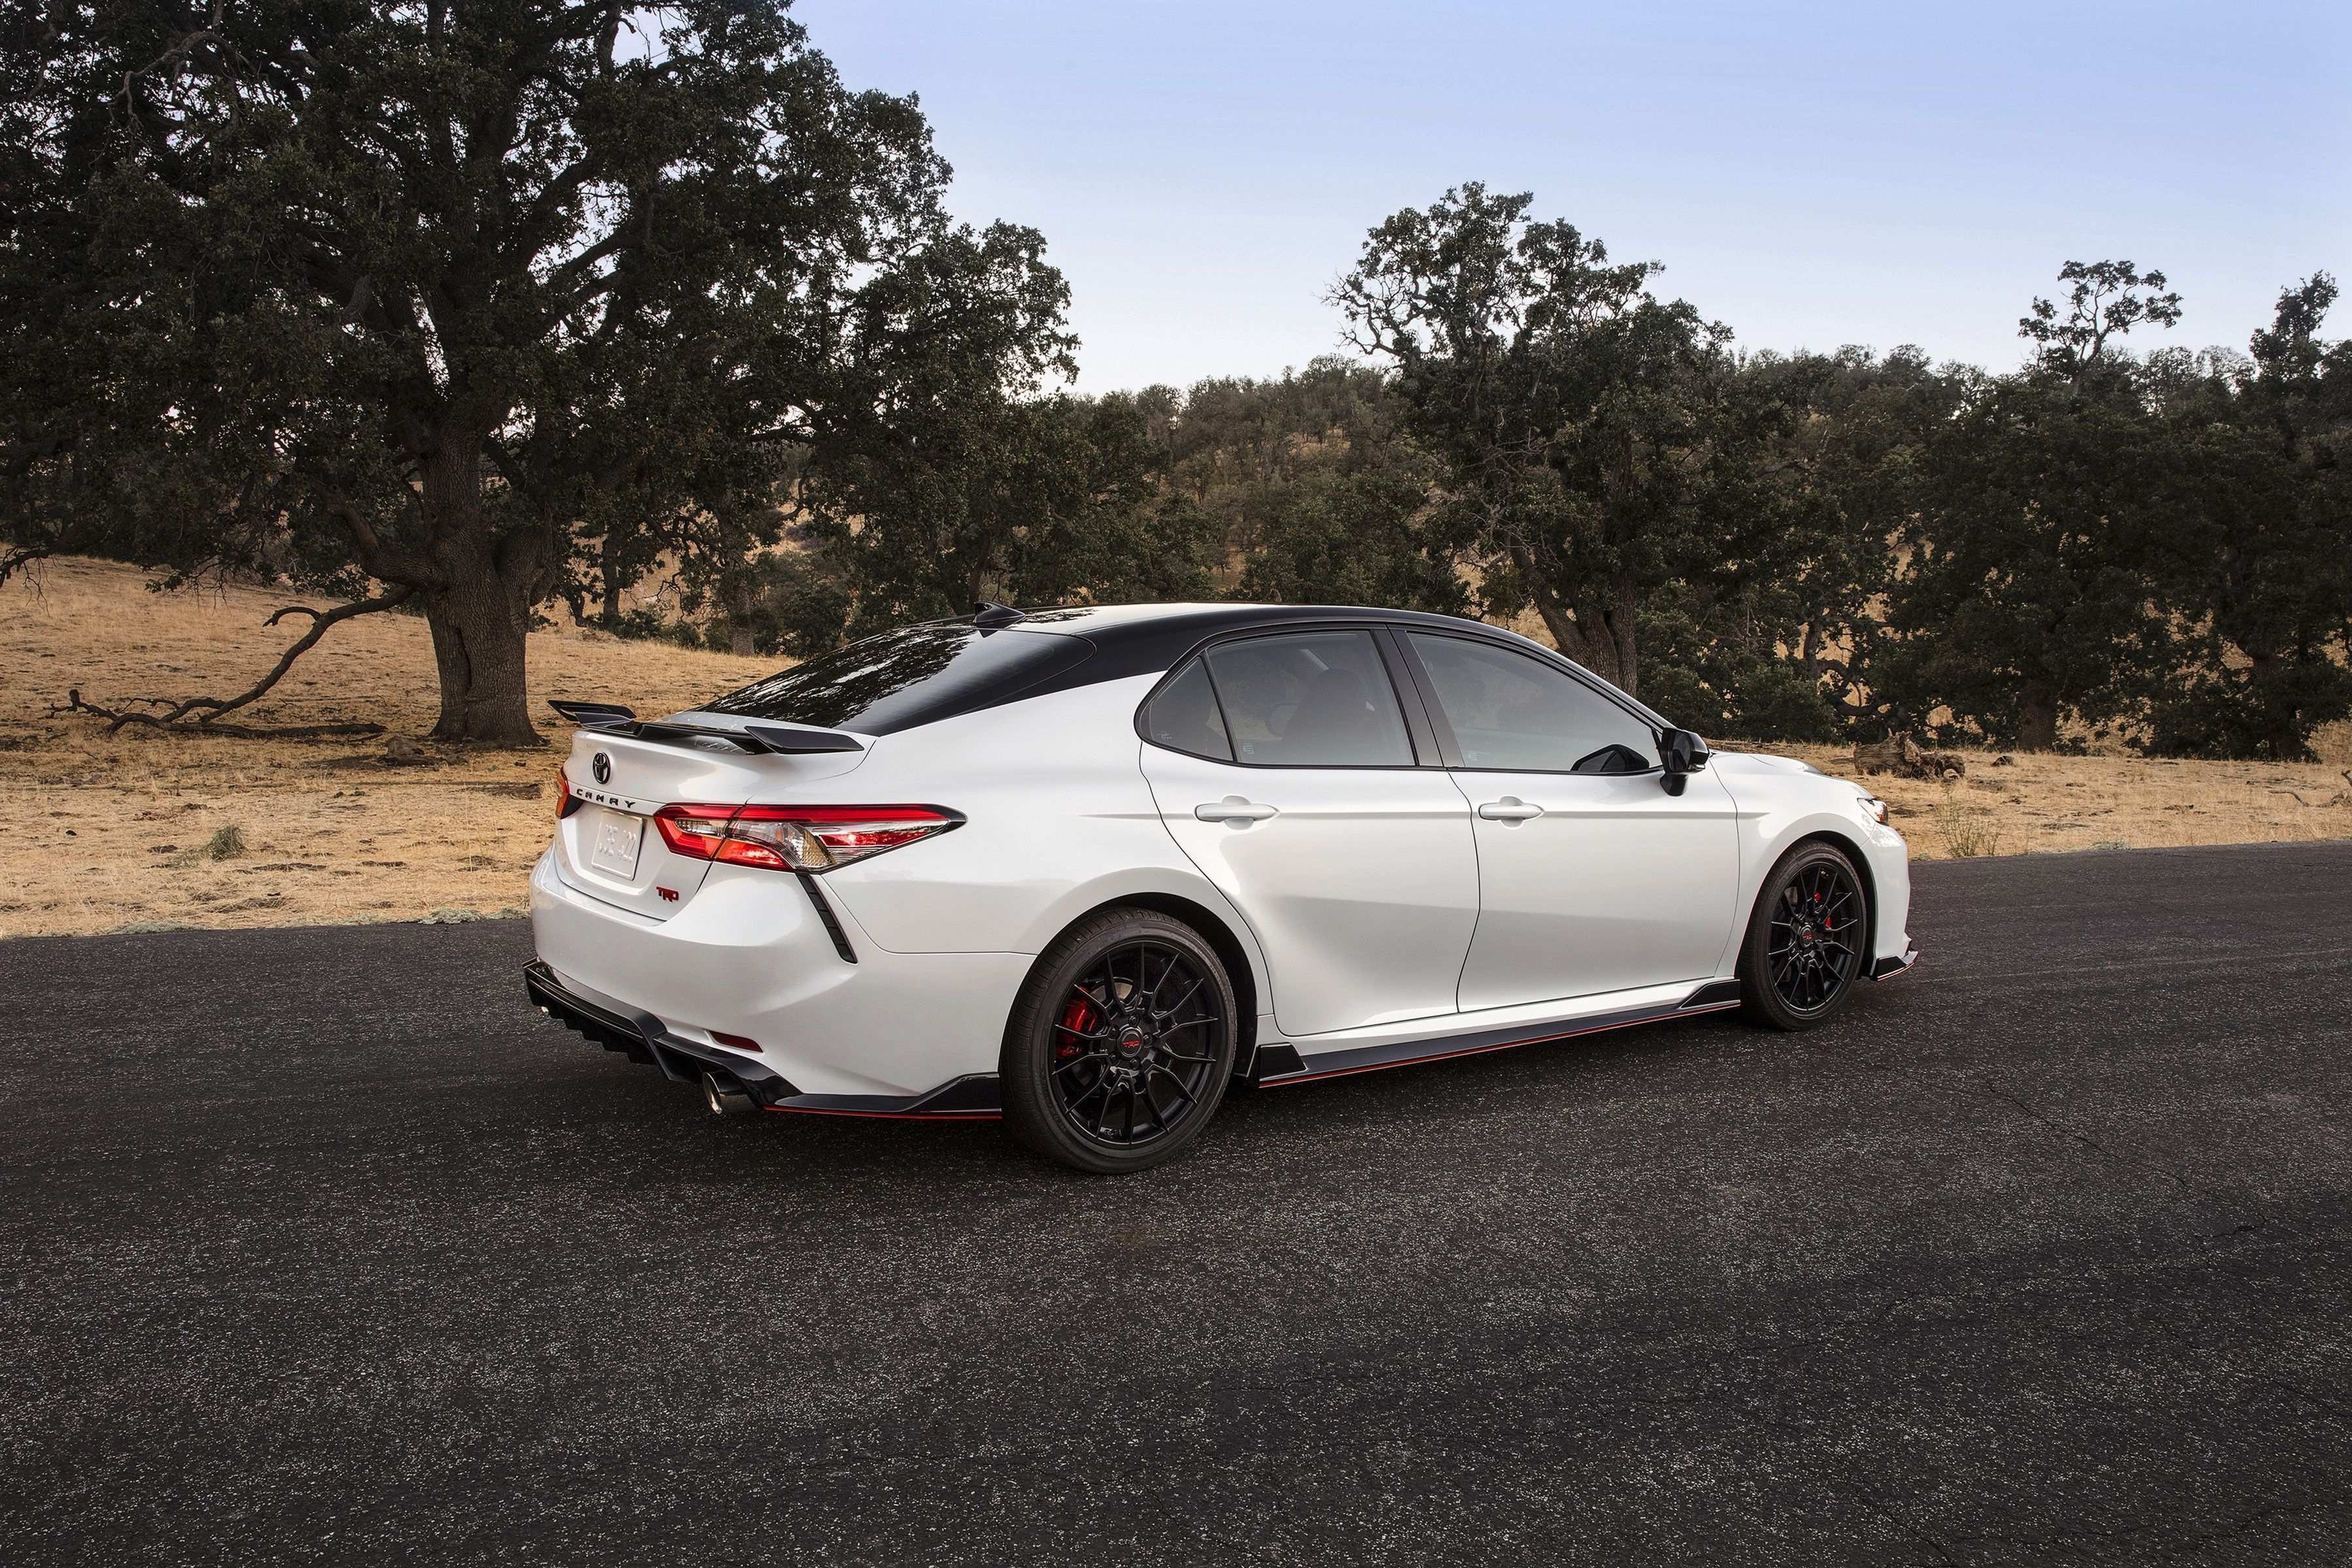 57 Great Toyota Camry 2020 Configurations for Toyota Camry 2020